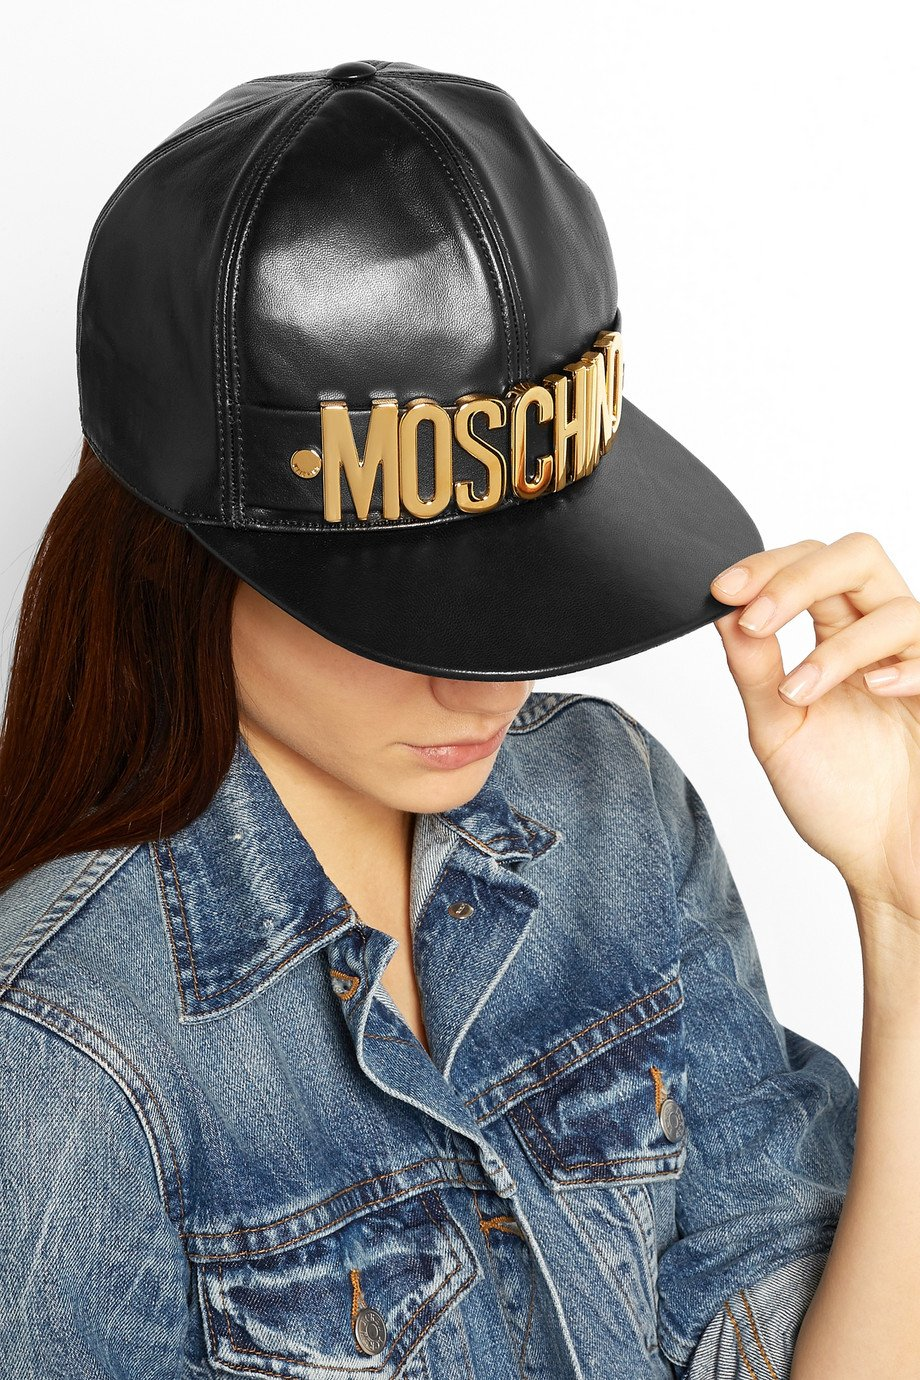 Lyst - Moschino Embellished Leather Cap in Black 460f639fbcbb